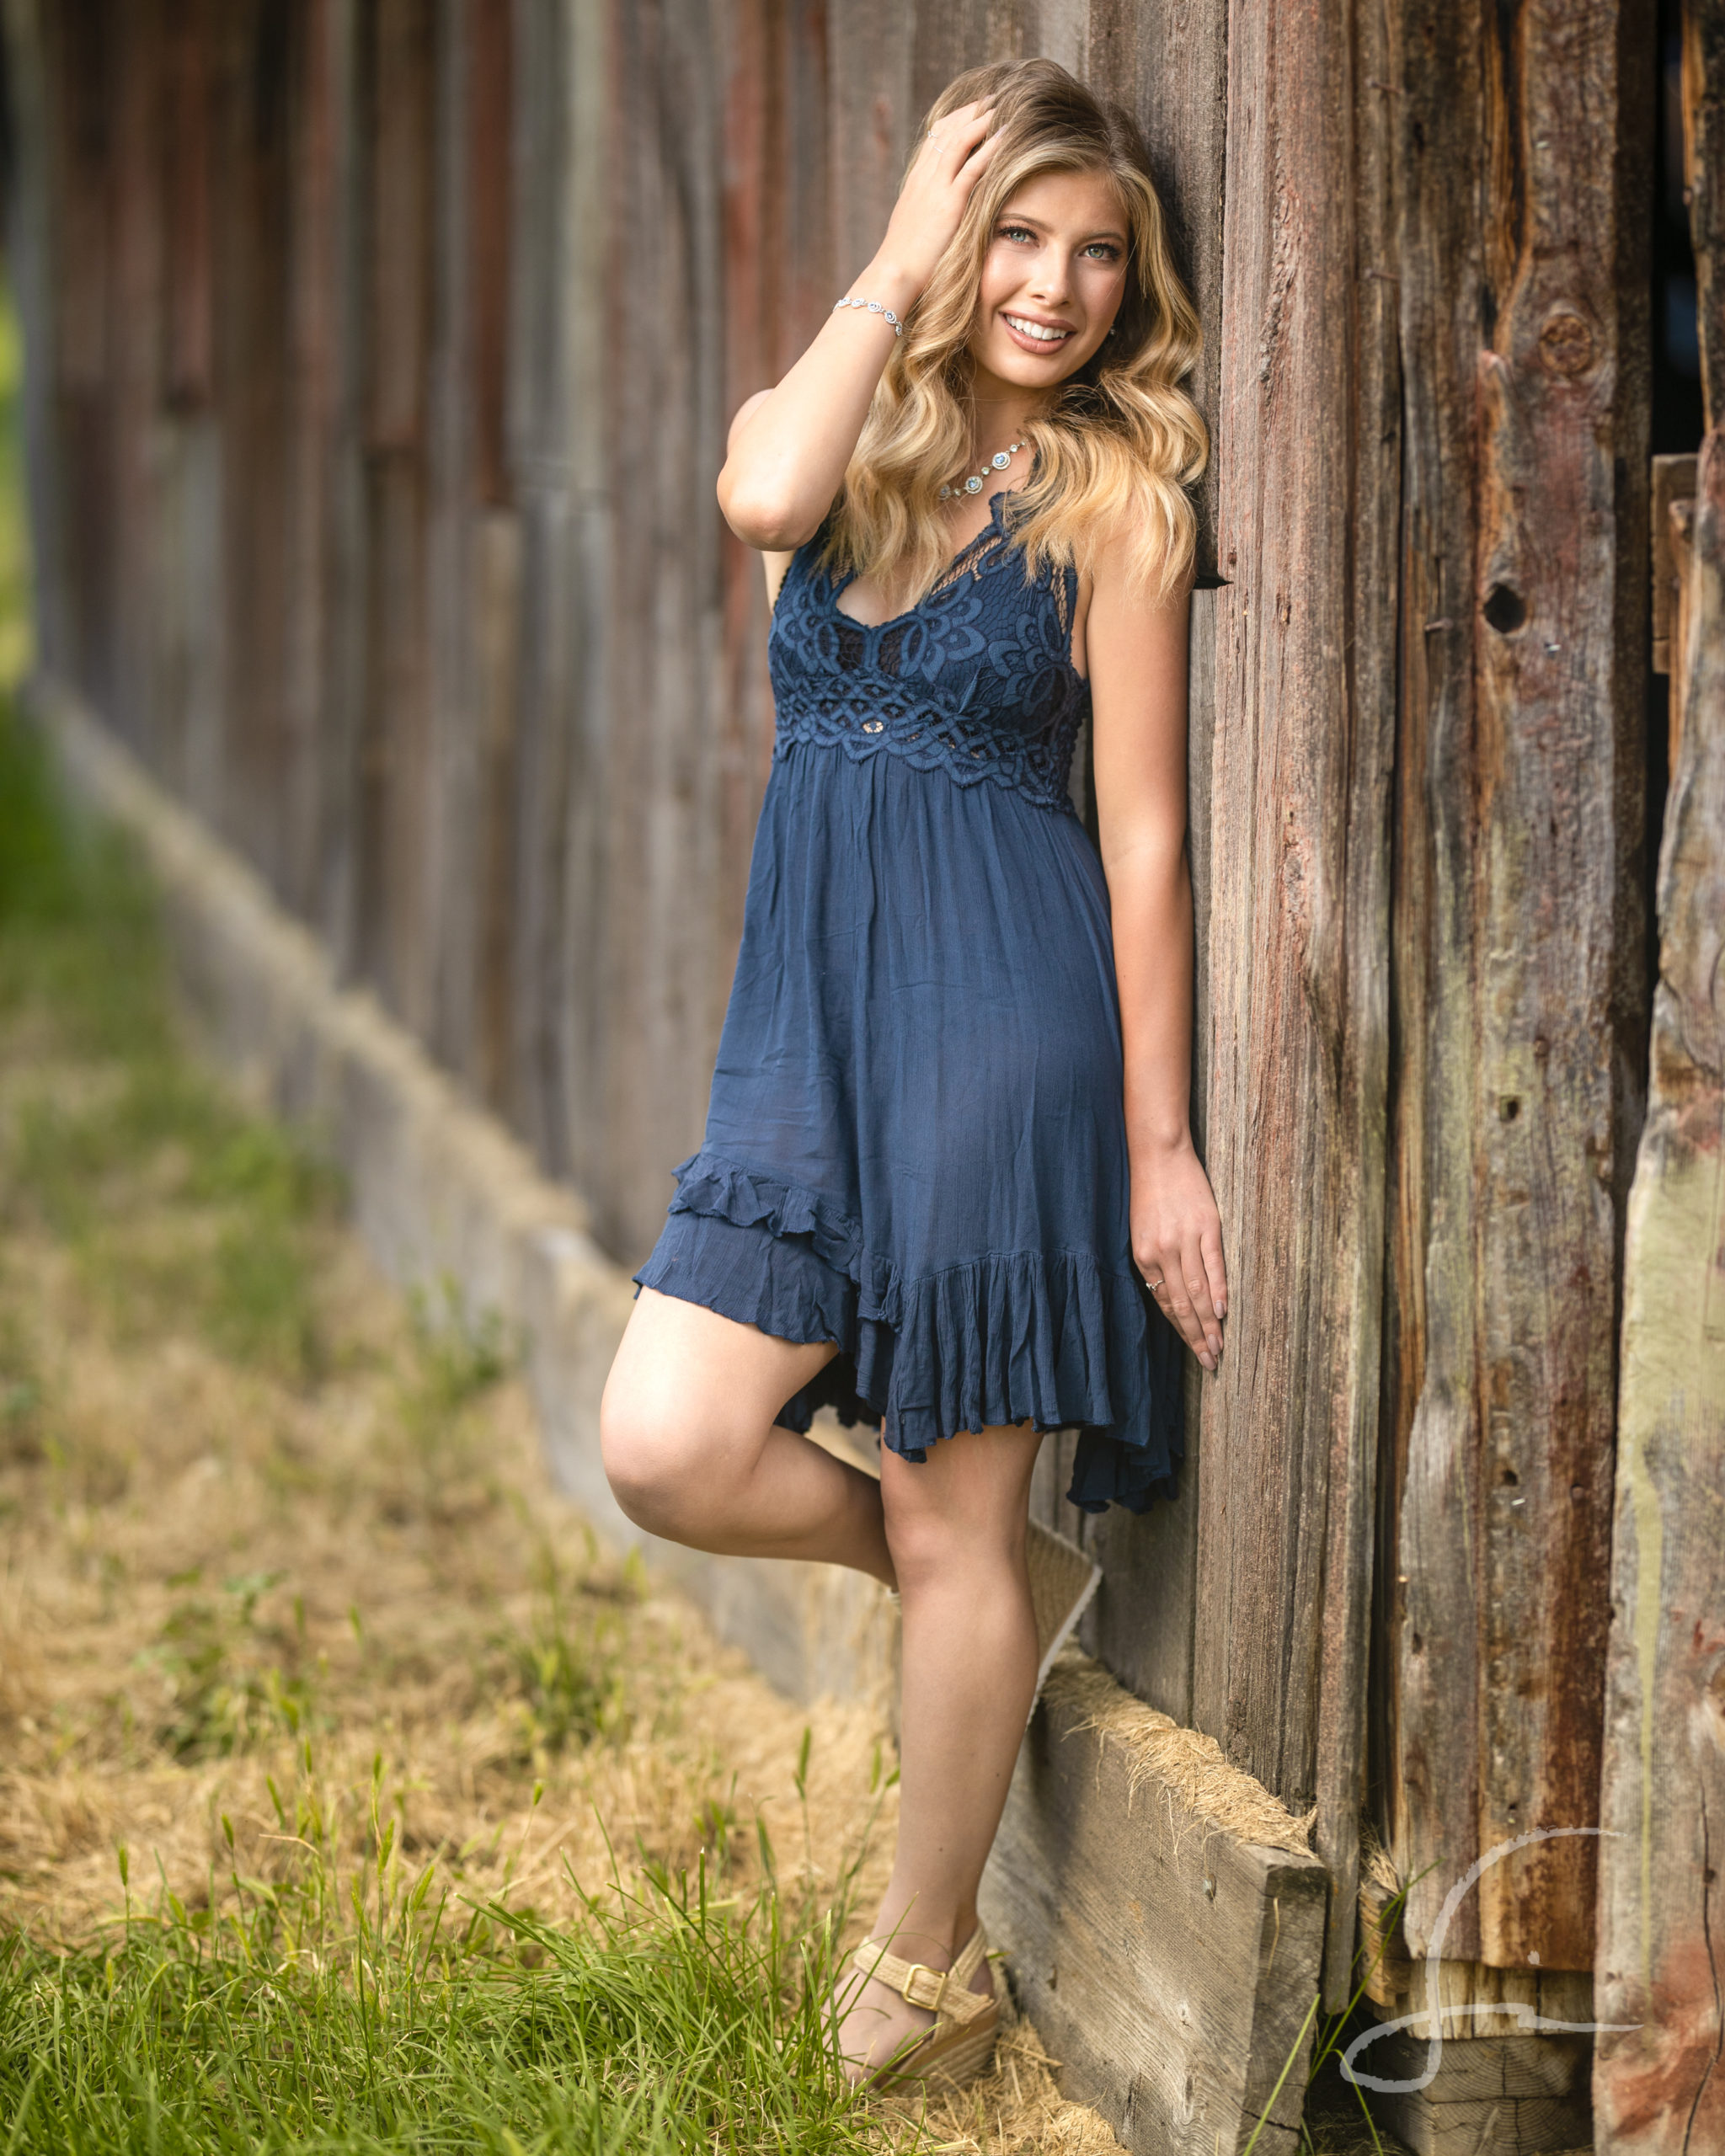 teen girl leaning against a rustic barn in a navy summer dress